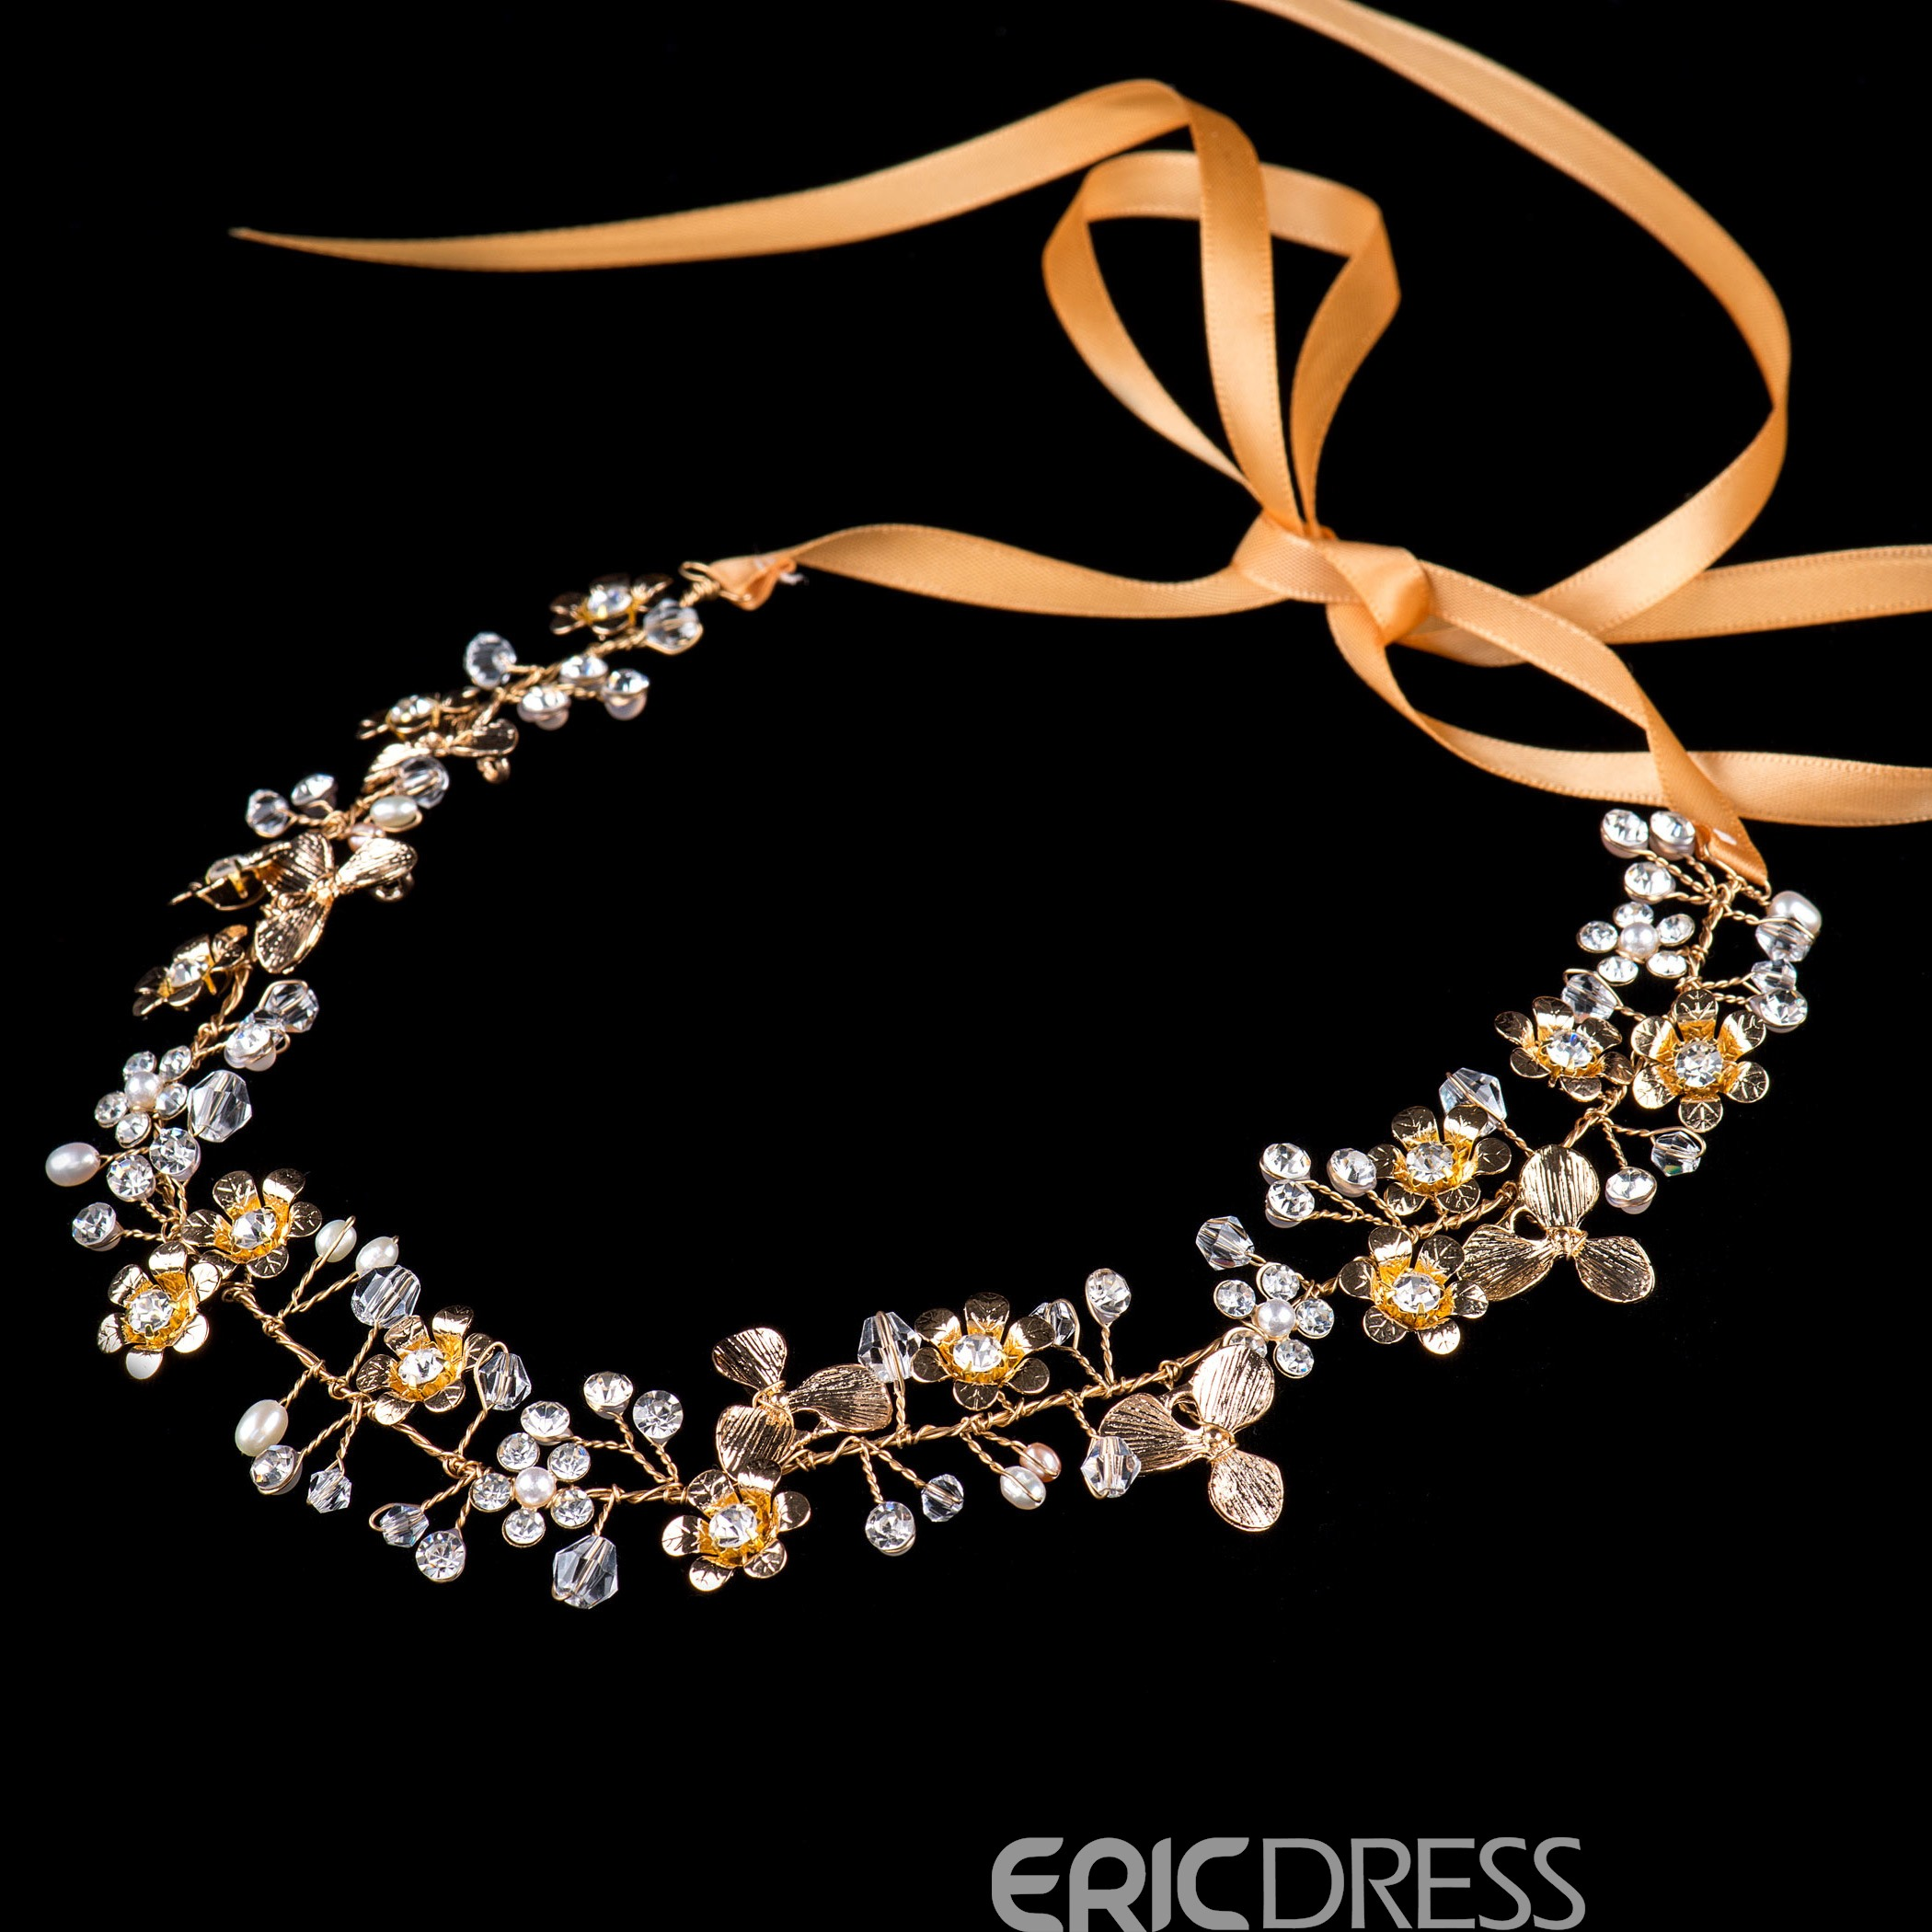 Ericdress Pretty Beading Hair Accessories